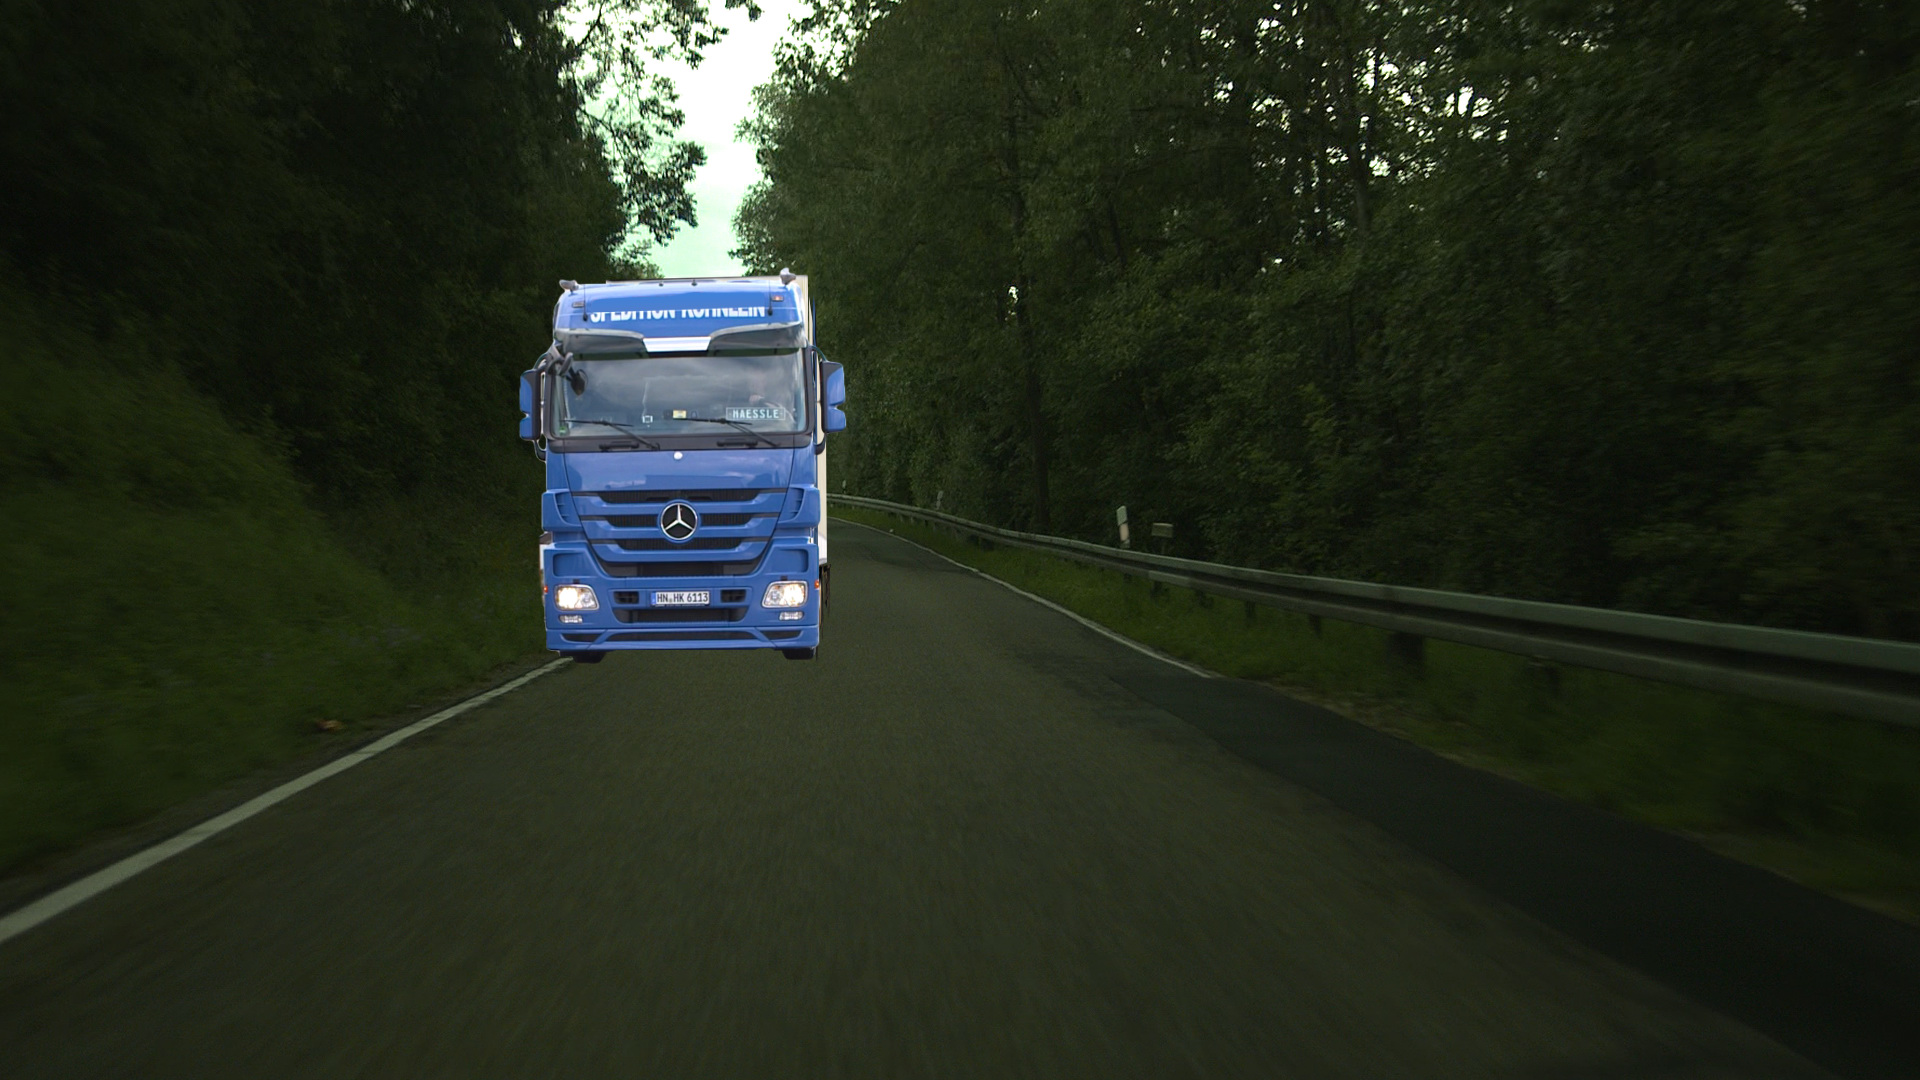 3D-Motortruck in the Background-Layer before the color-correction